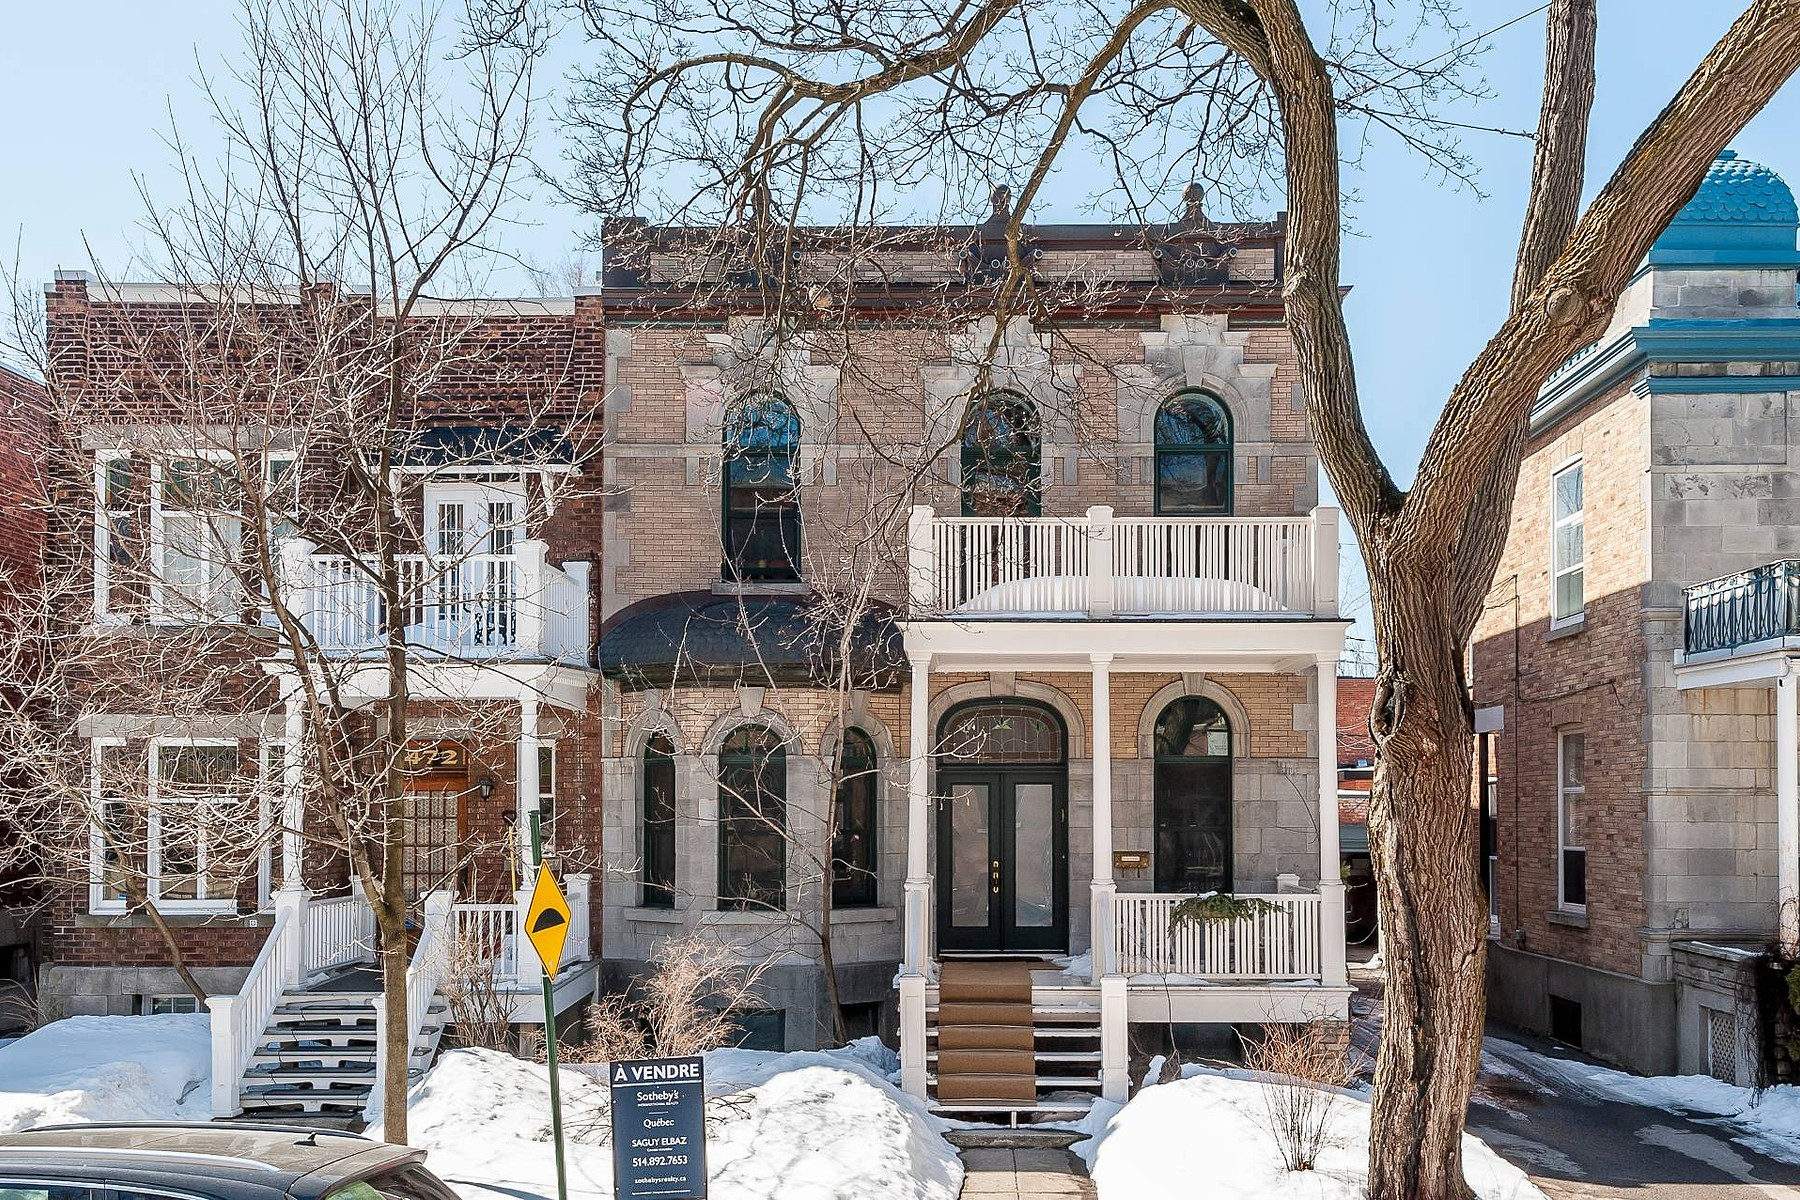 Single Family Home for Sale at Outremont, Montréal 474 Av. Bloomfield Outremont, Quebec, H2V3R8 Canada